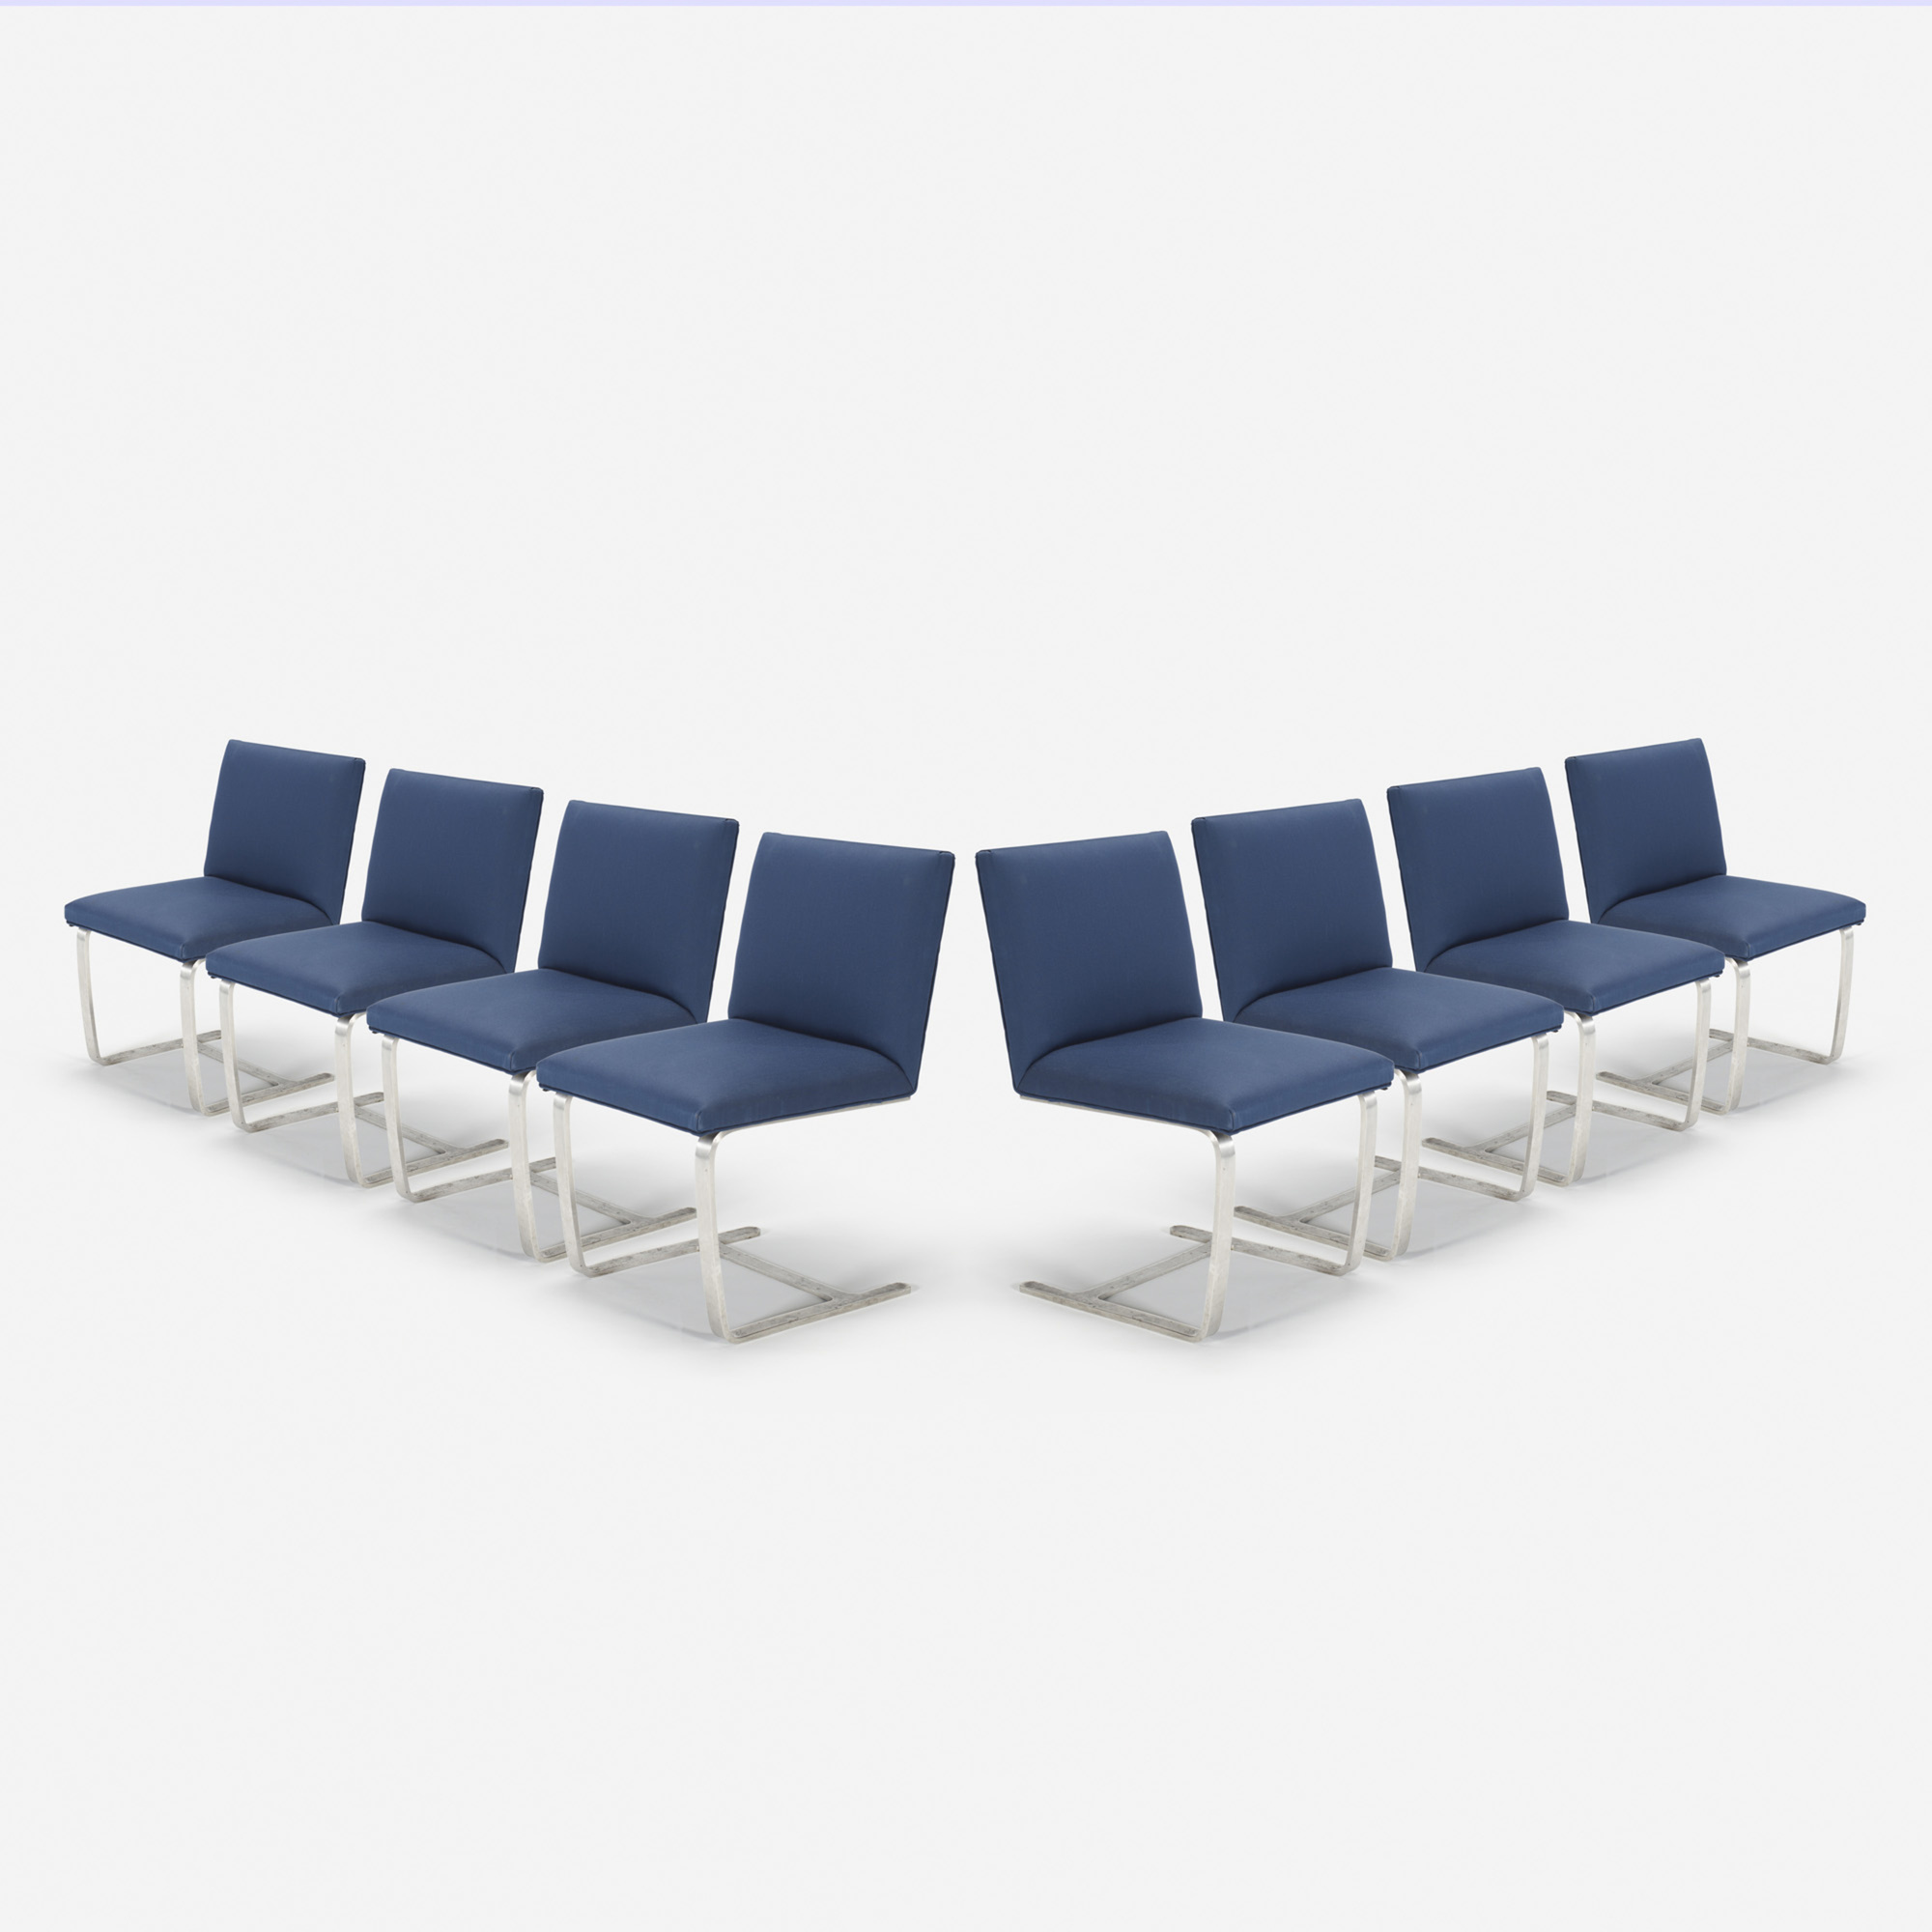 212: Ludwig Mies van der Rohe / Custom Brno side chairs from The Four Seasons, set of eight (1 of 1)